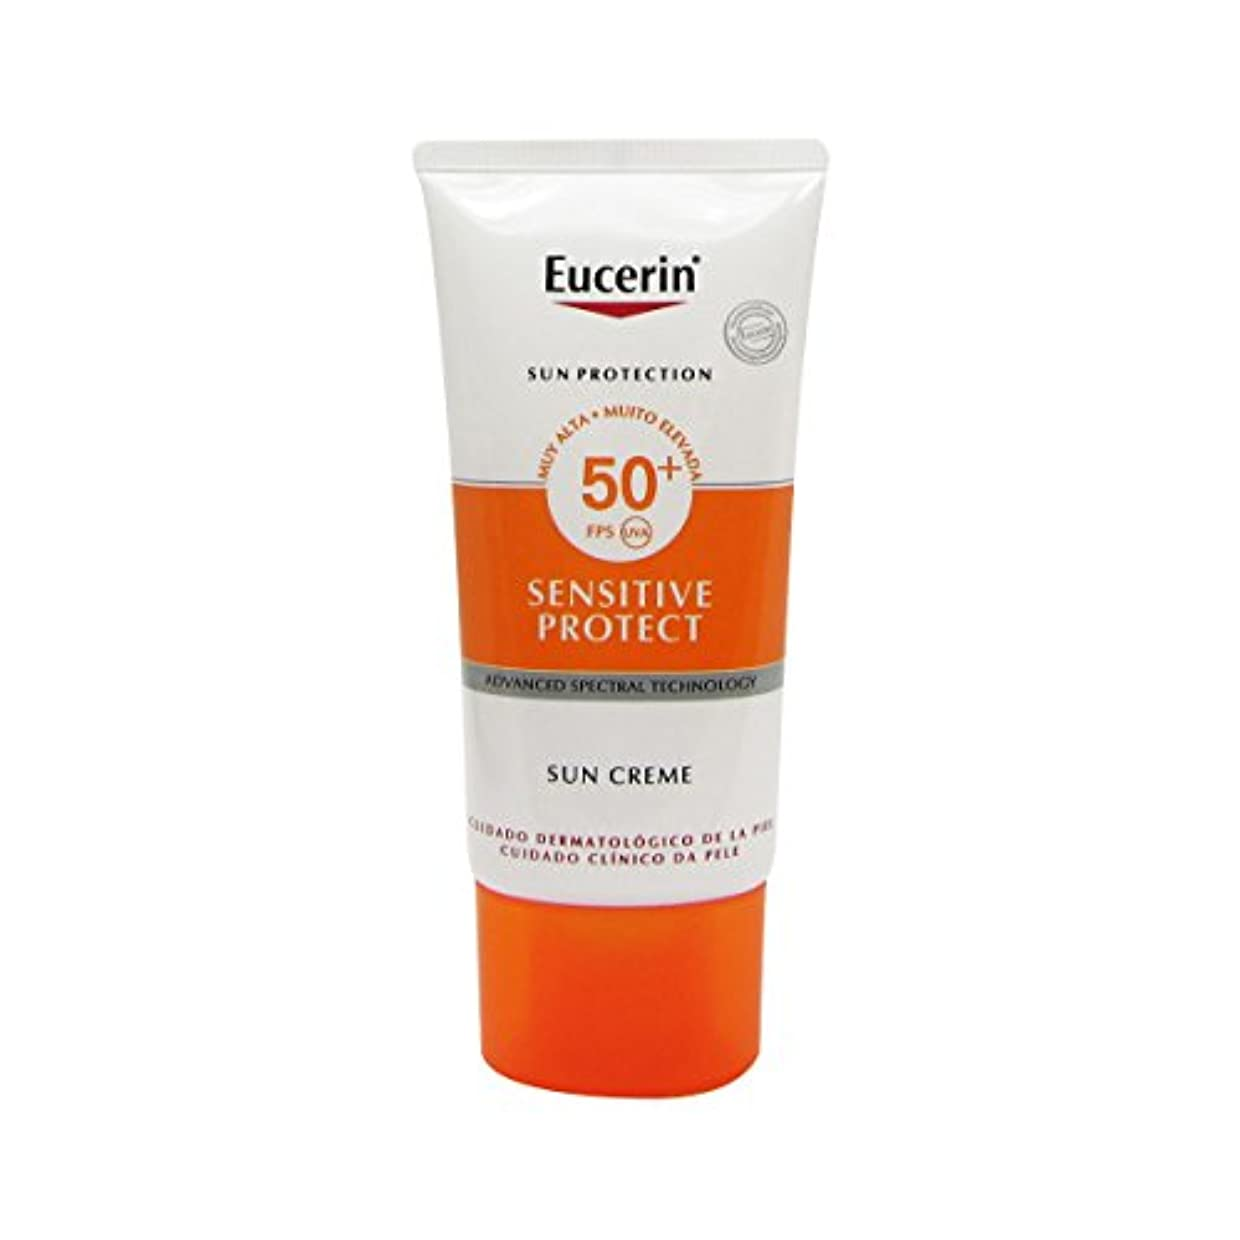 Eucerin Sun Face Cream Dry Skin Spf50 50ml [並行輸入品]